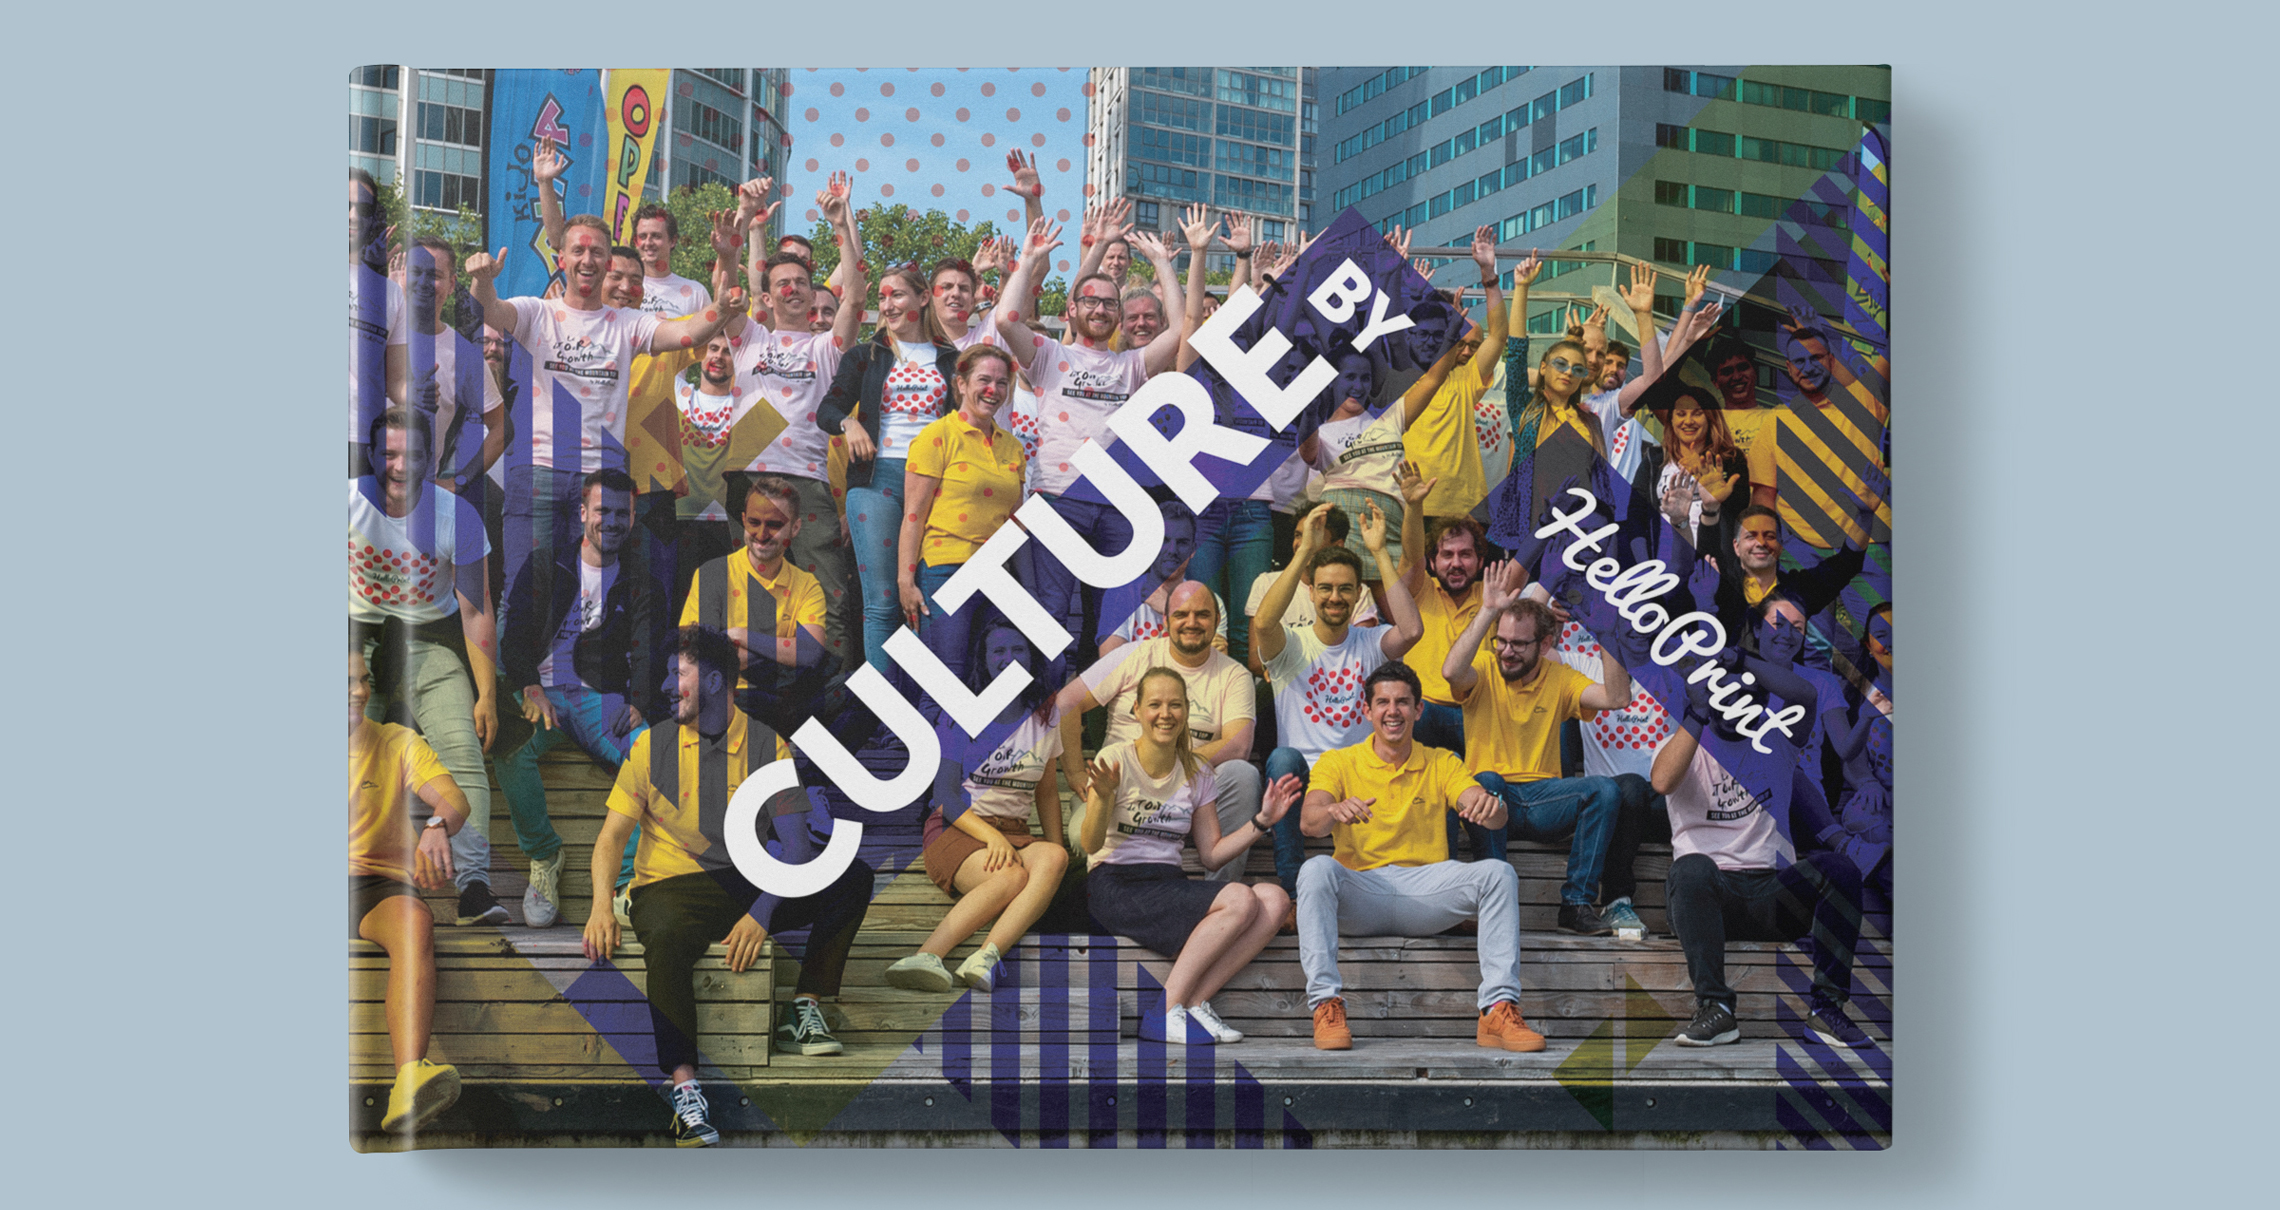 Culture: by Helloprint